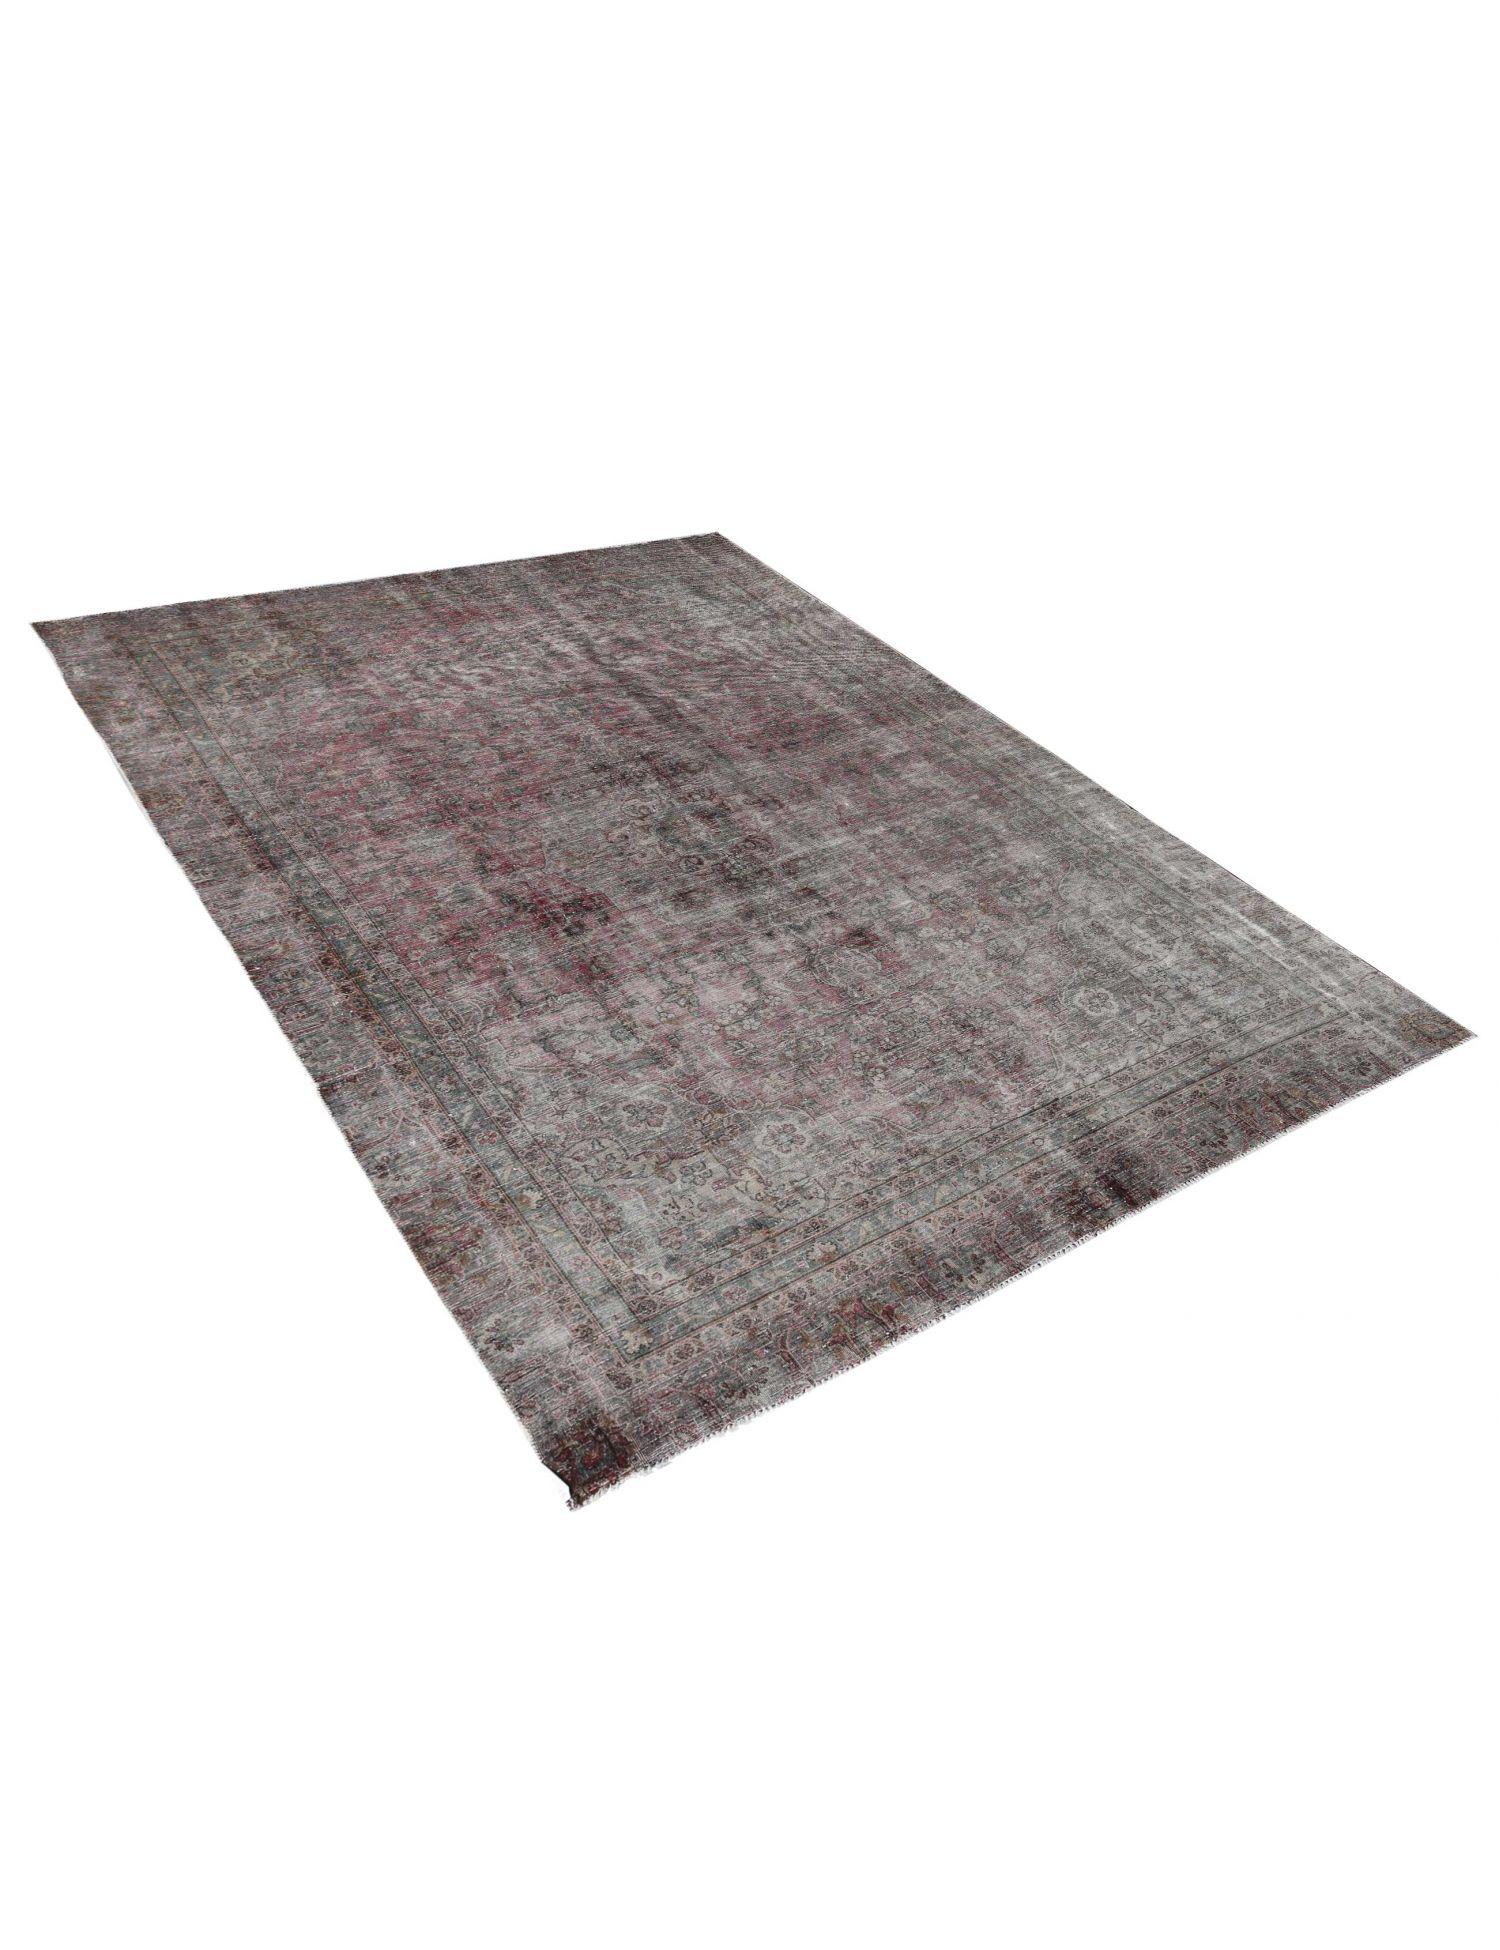 Vintage Carpet  grey <br/>330 x 232 cm